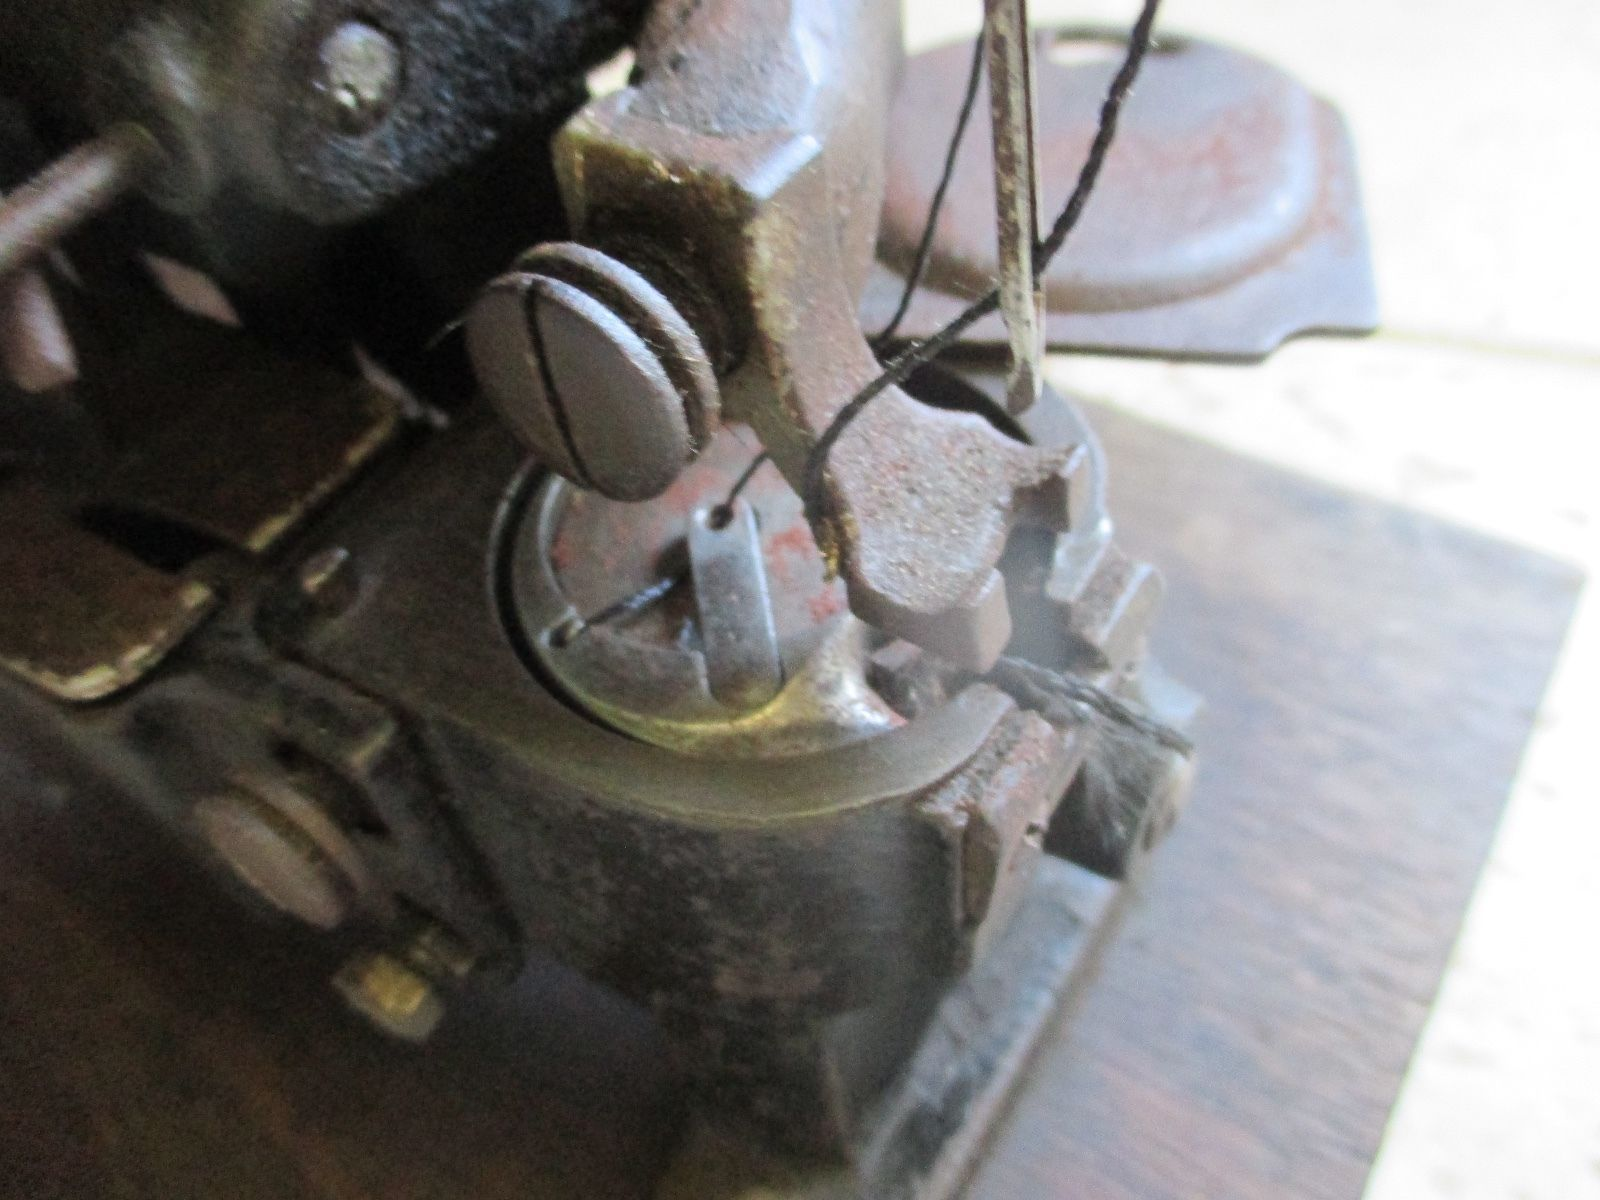 Ruh SD28 Details about Original Junker & Ruh SD 28 Sewing machine